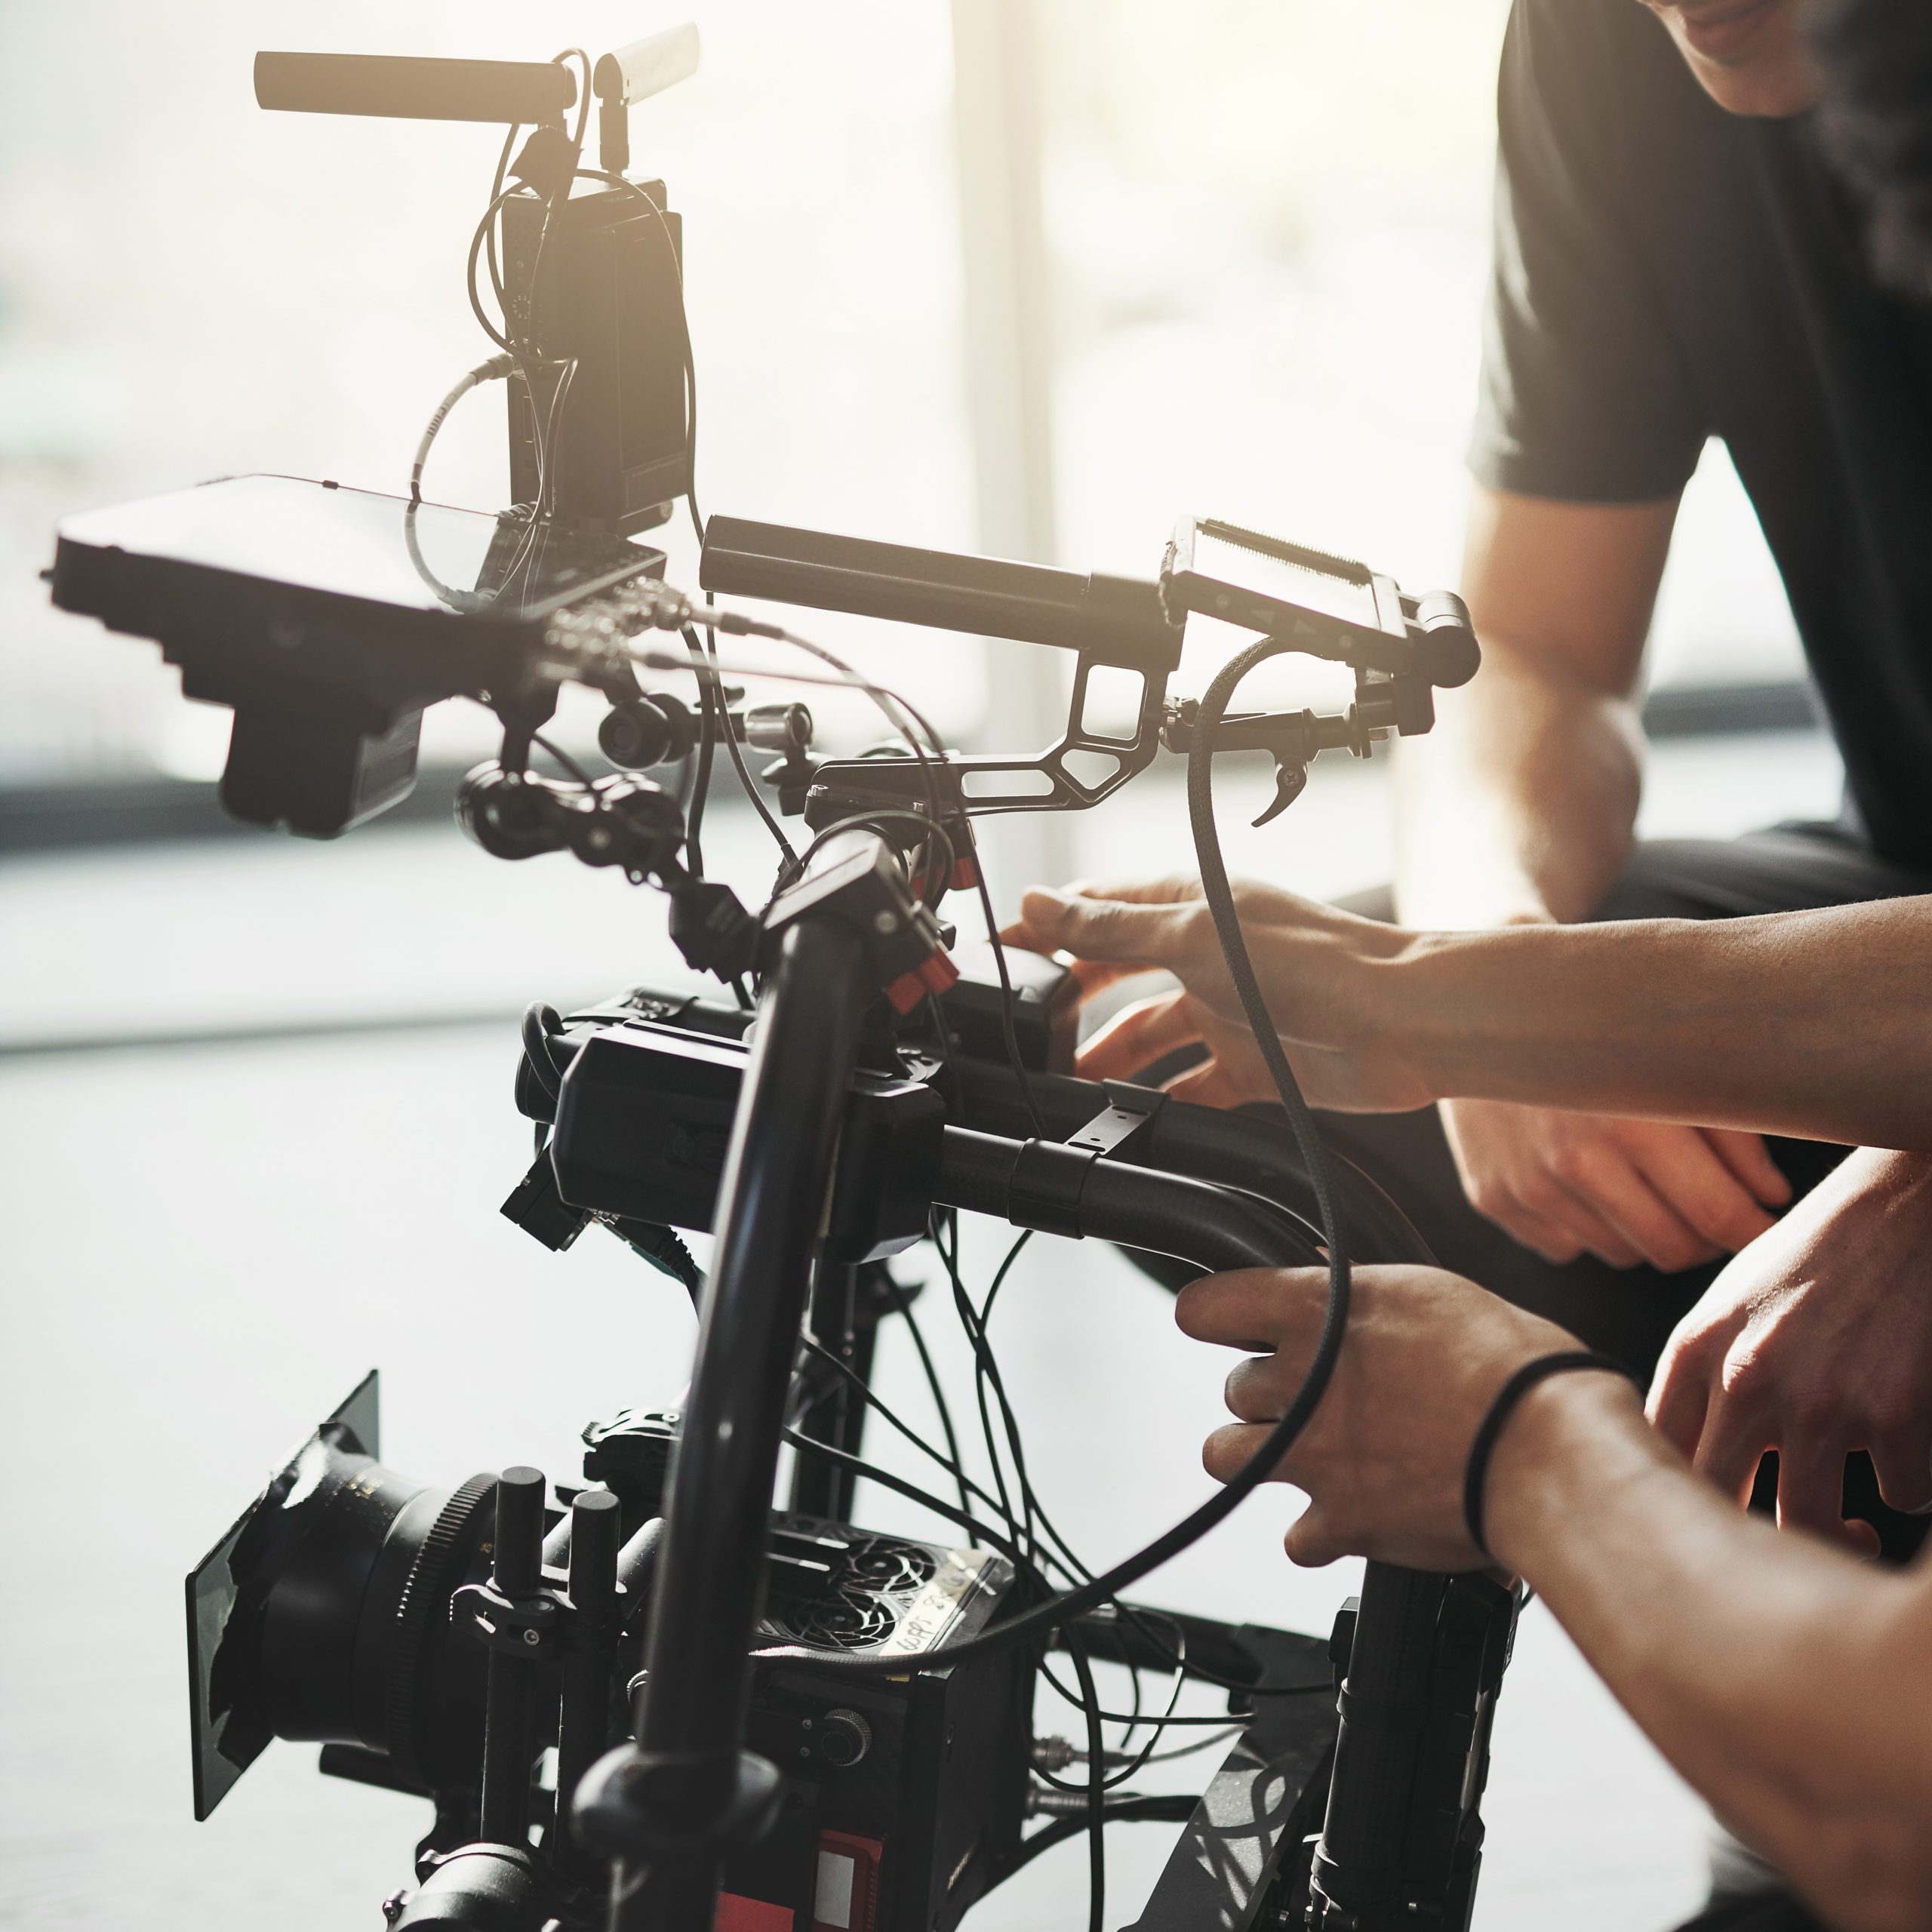 Behind the scenes shot of two young camera operators shooting a scene with a state of the art camera inside of a studio during the day